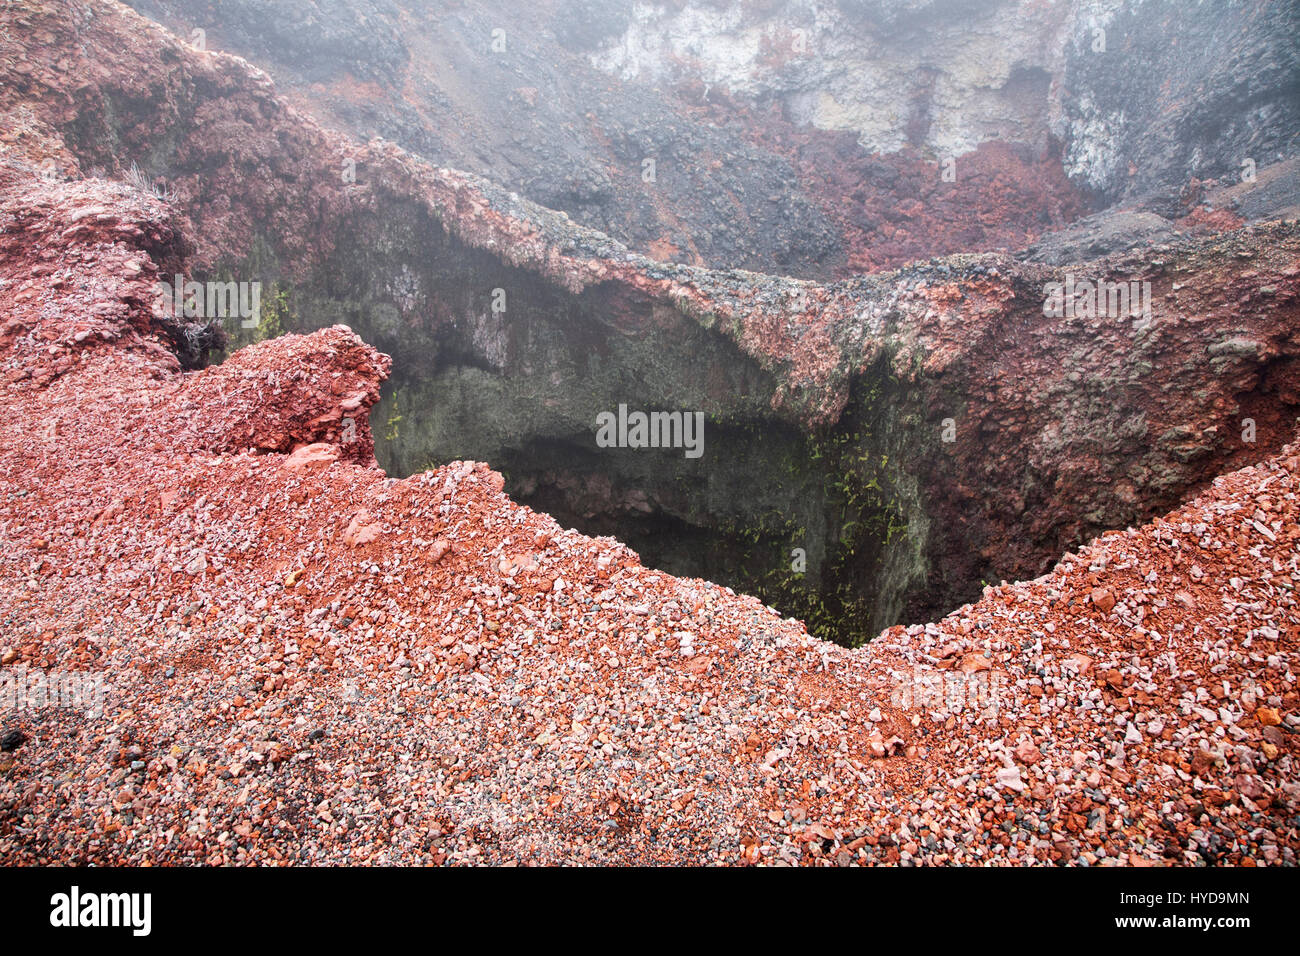 Fumarole on Volcan Chico - Stock Image